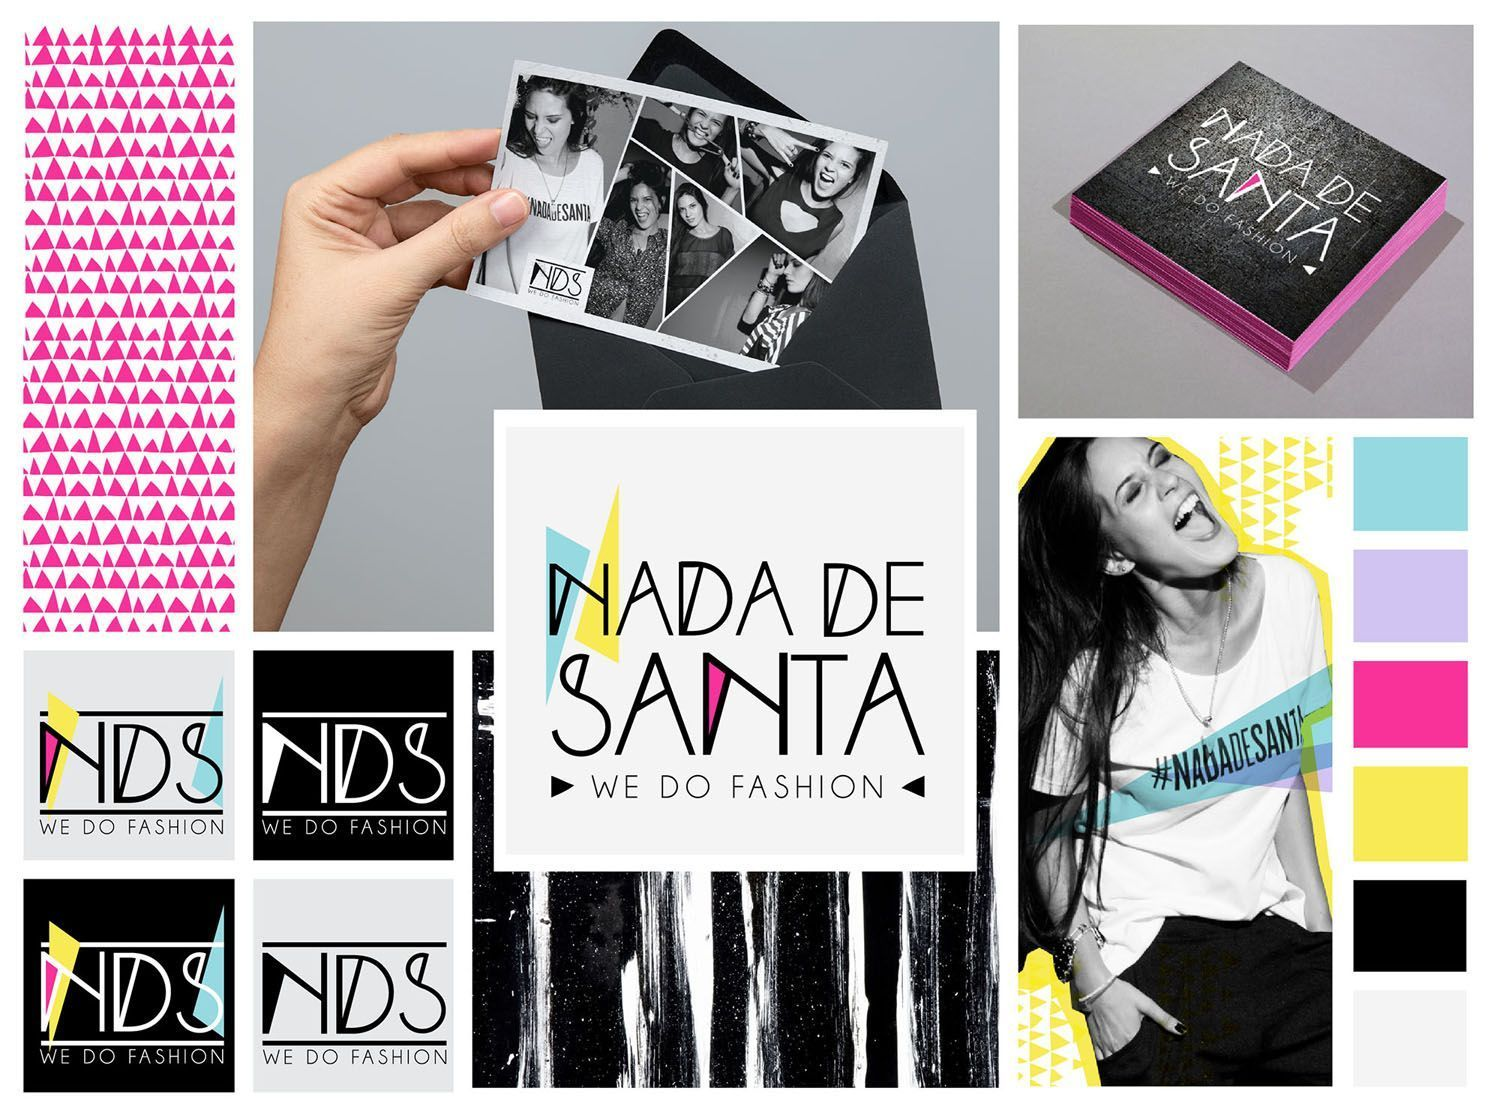 ID-de-marca_NDS-02-featured